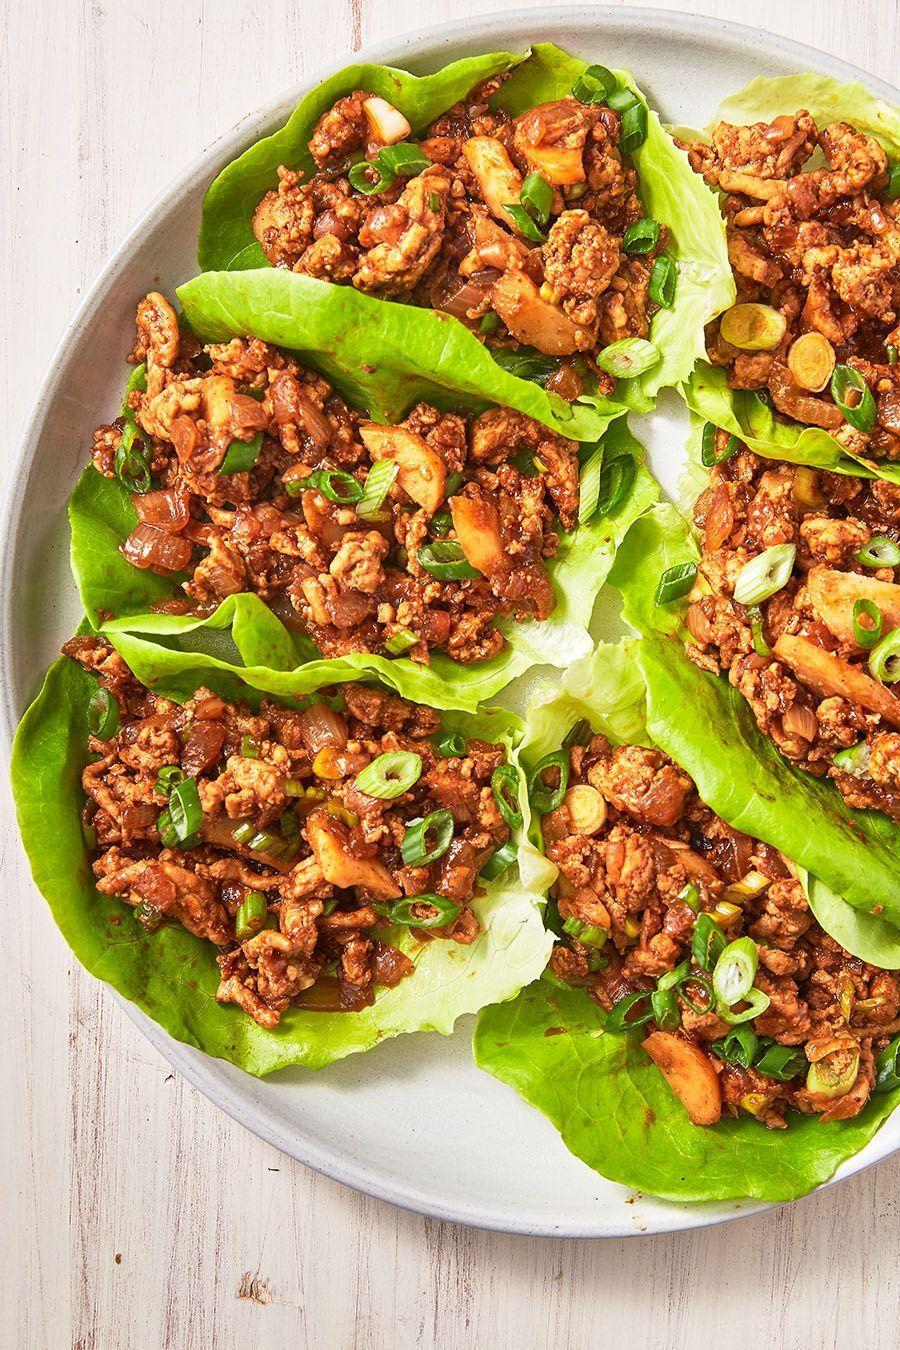 "<p>The sauce for these chicken lettuce wraps is extremely addicting. The sriracha adds a little heat, but you can definitely leave it out if you like (although, we like to add a little extra 😉).</p><p>Get the <a href=""https://www.delish.com/uk/cooking/recipes/a29891044/asian-lettuce-wraps-recipe/"" rel=""nofollow noopener"" target=""_blank"" data-ylk=""slk:Asian Chicken Lettuce Wraps"" class=""link rapid-noclick-resp"">Asian Chicken Lettuce Wraps</a> recipe.</p>"